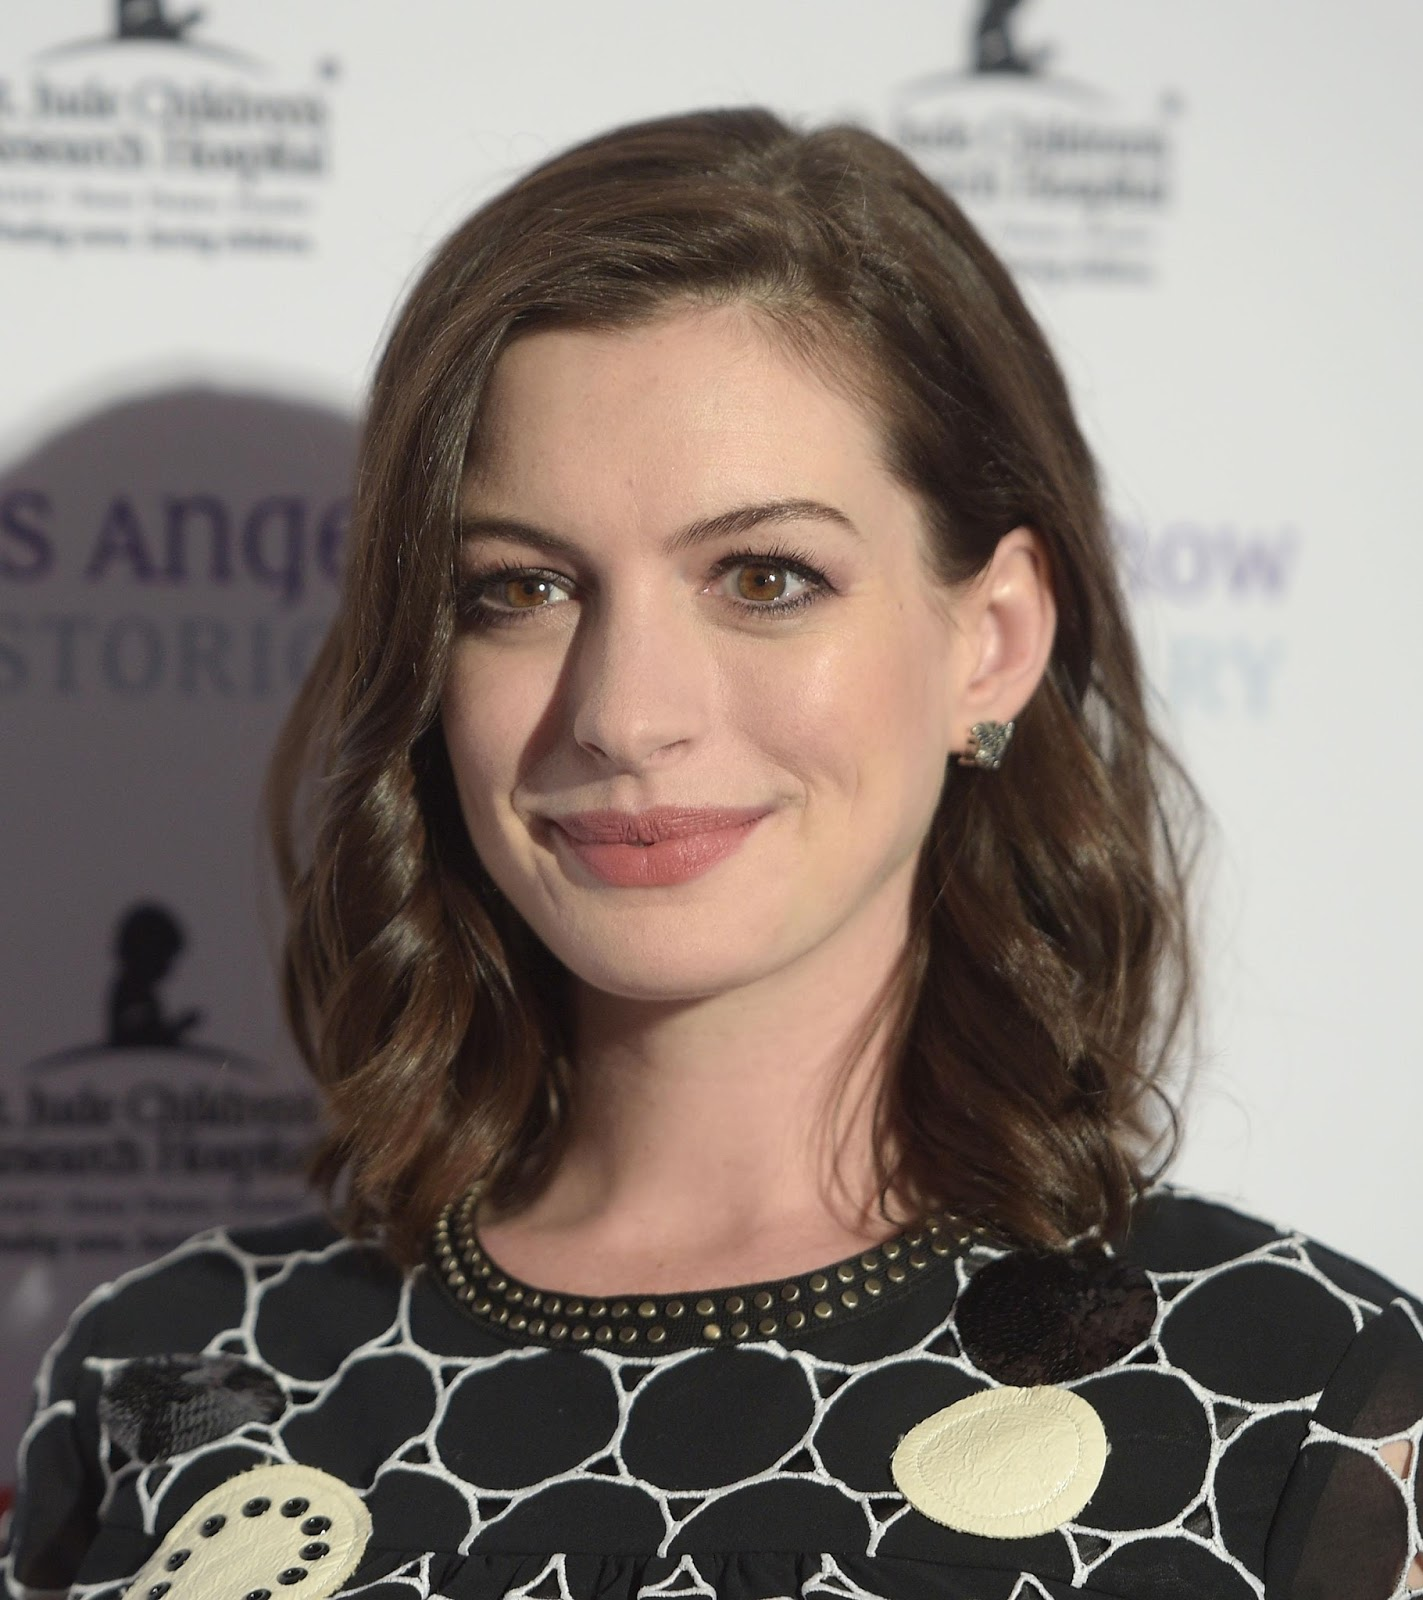 Anne Hathaway Actress: Arts Cross Stitch: Actress, Singer, @ Anne Hathaway